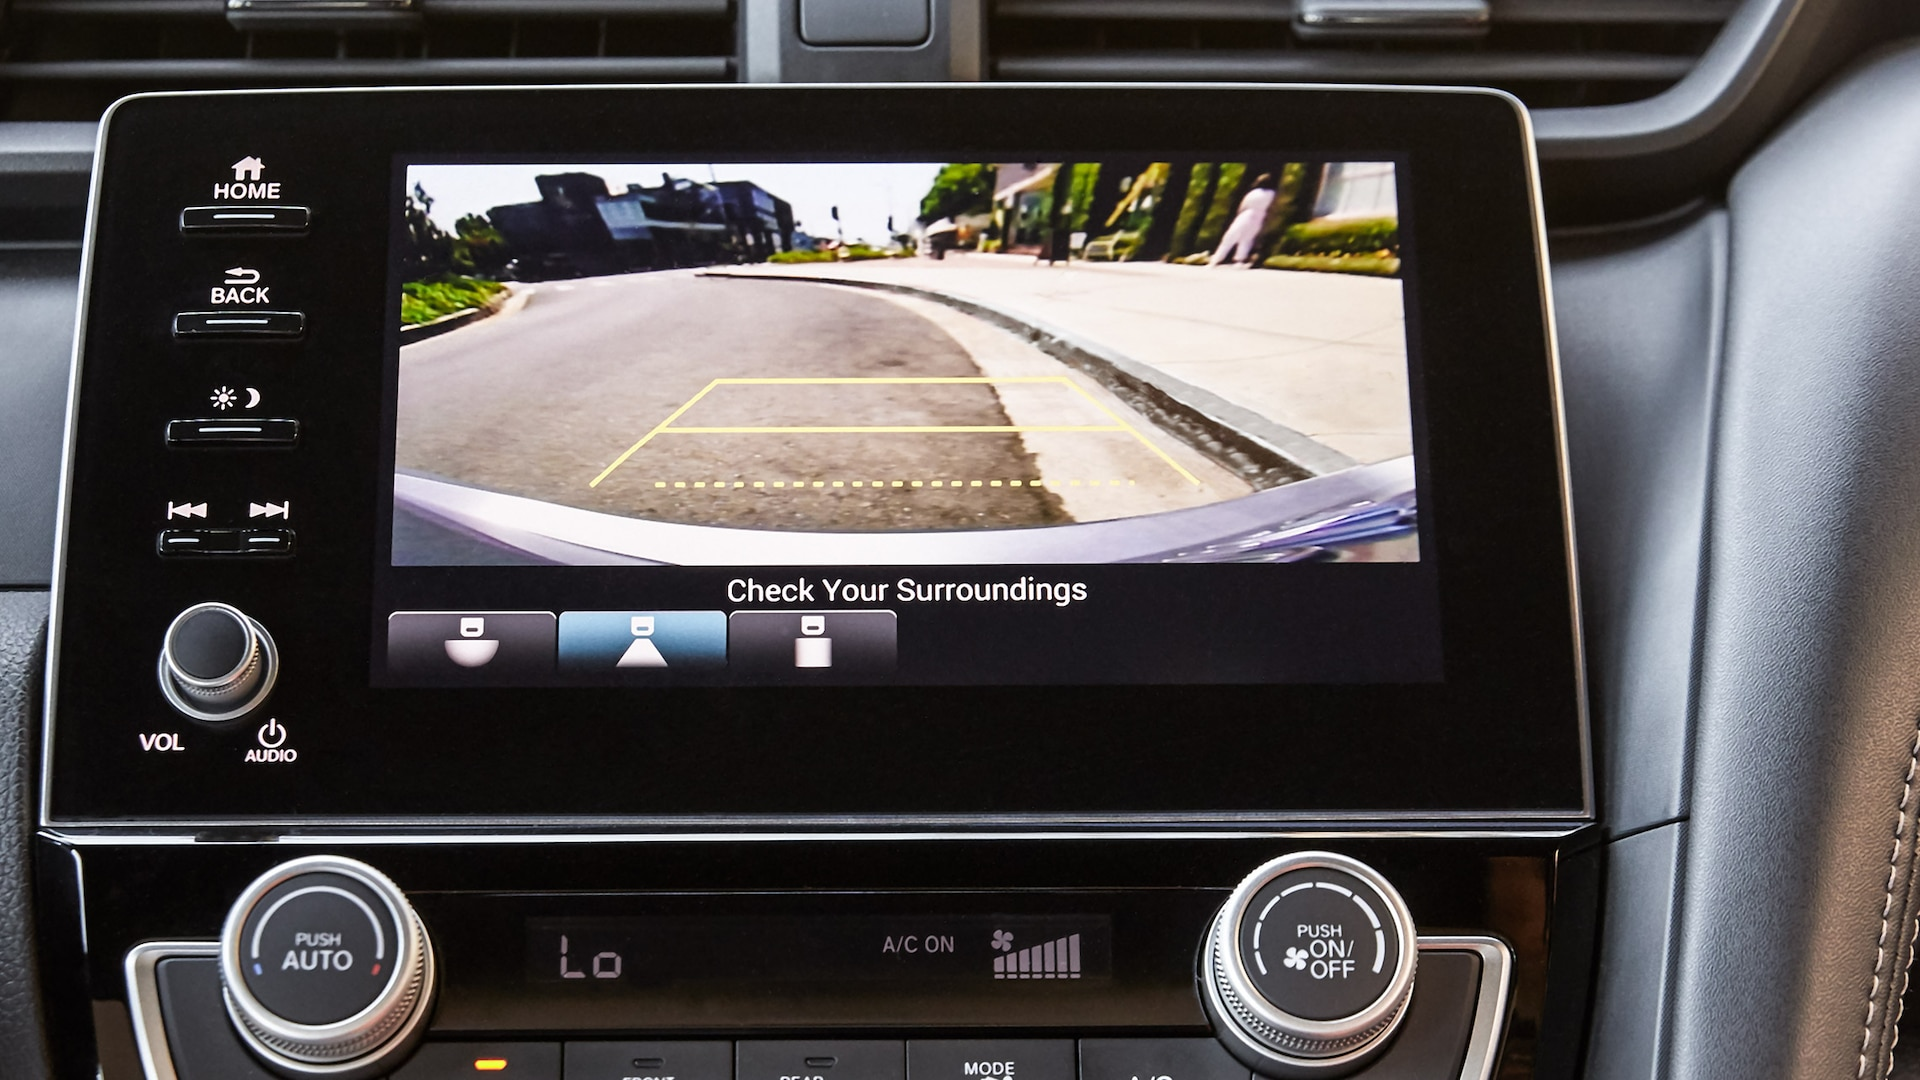 Backup camera detail on Digital Audio touch-screen on 2020 Honda Insight.